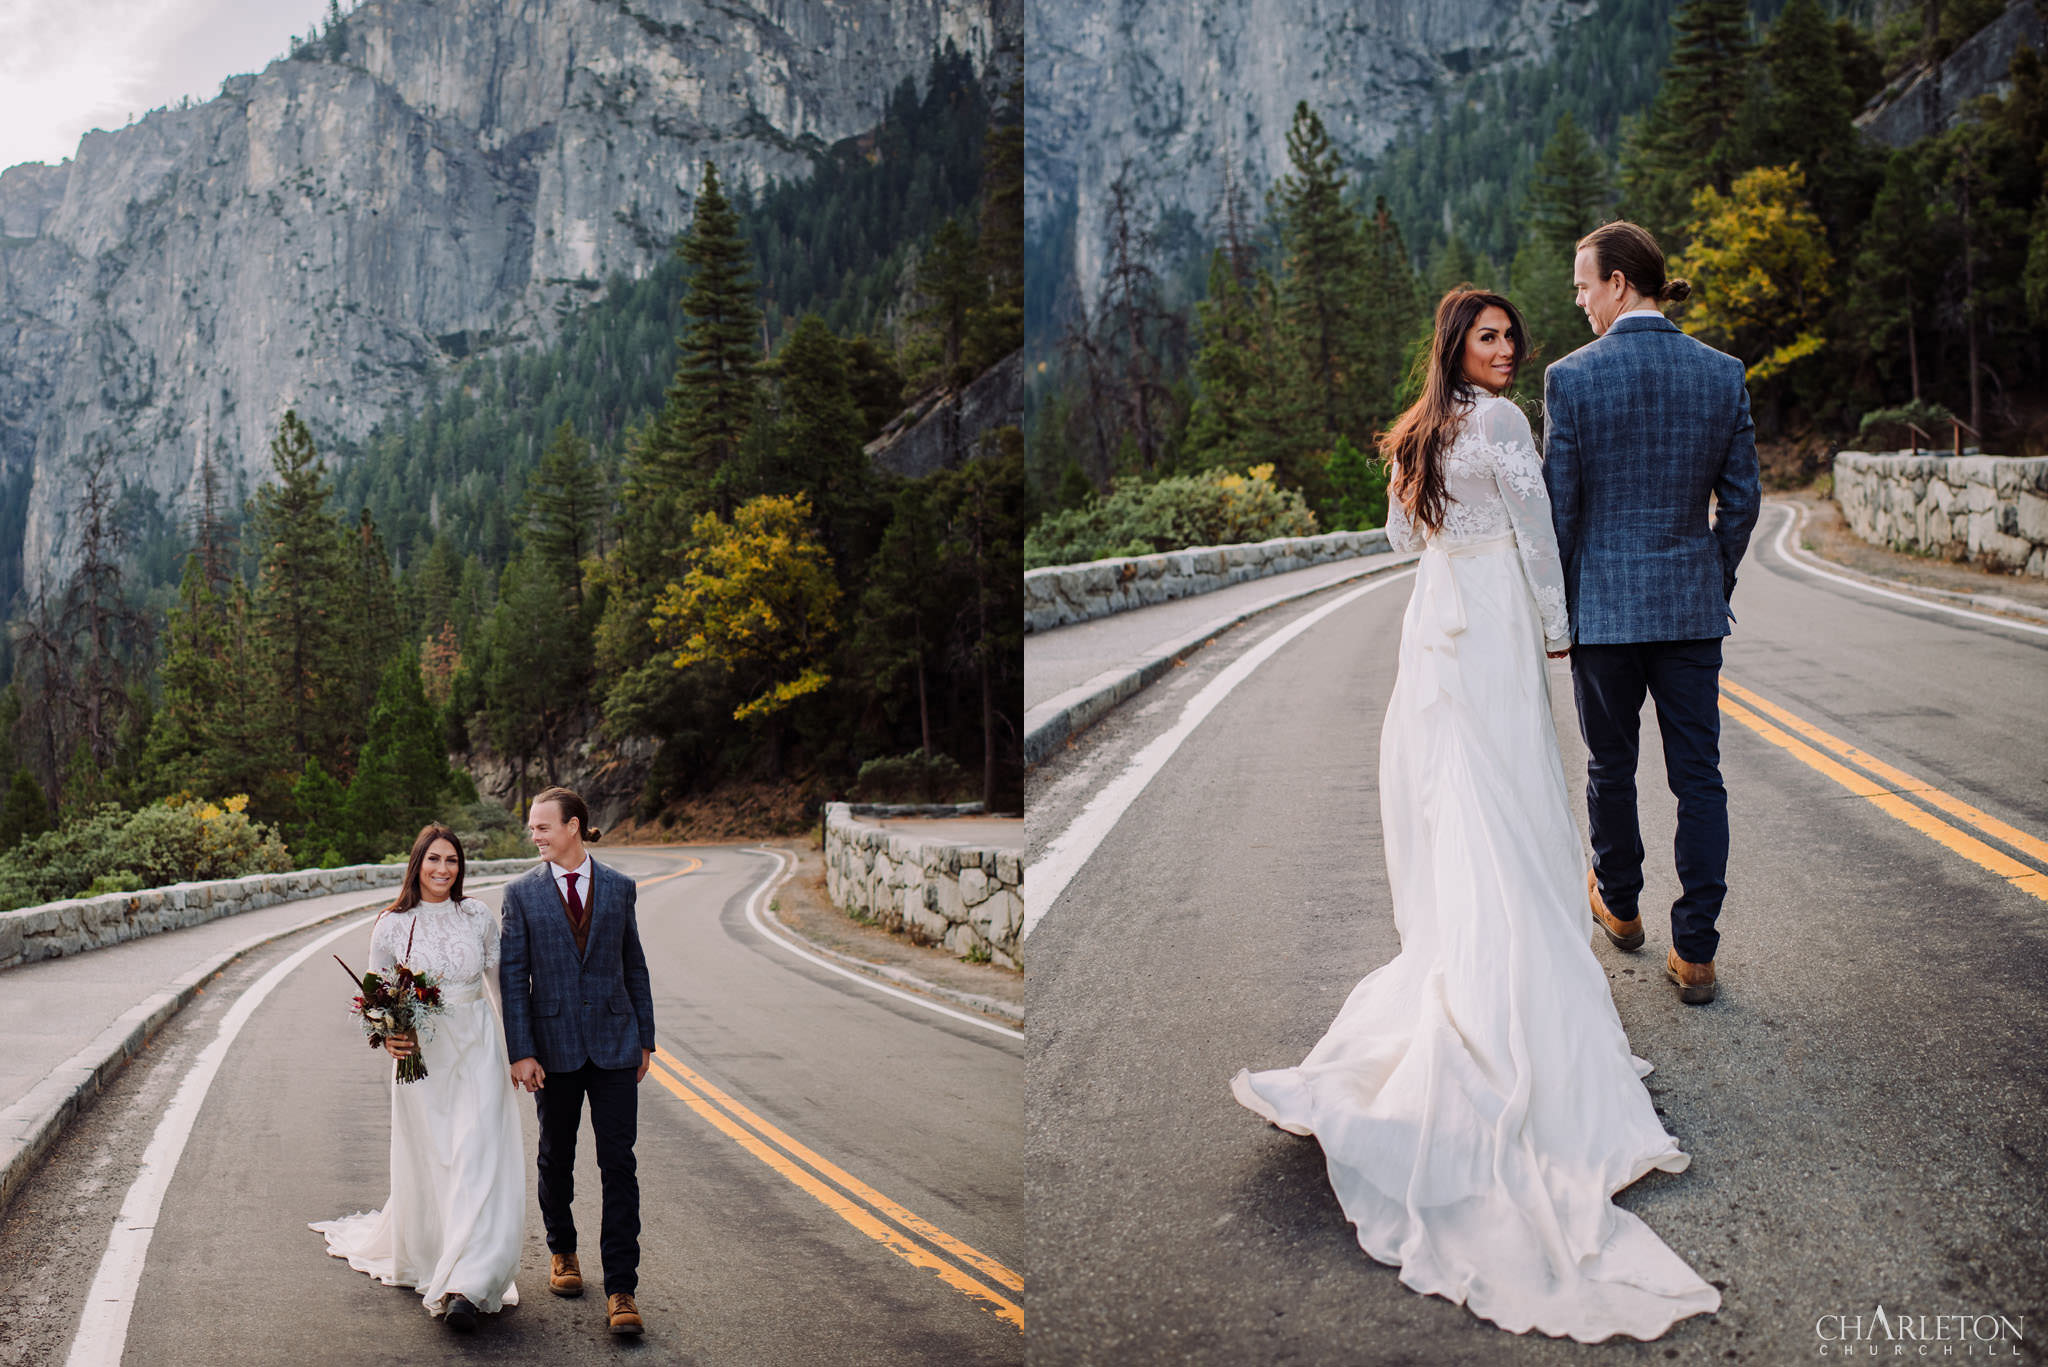 wedding couple romantic walk holding hands down yosemite valley road during the fall season in wedding dress with bouquet